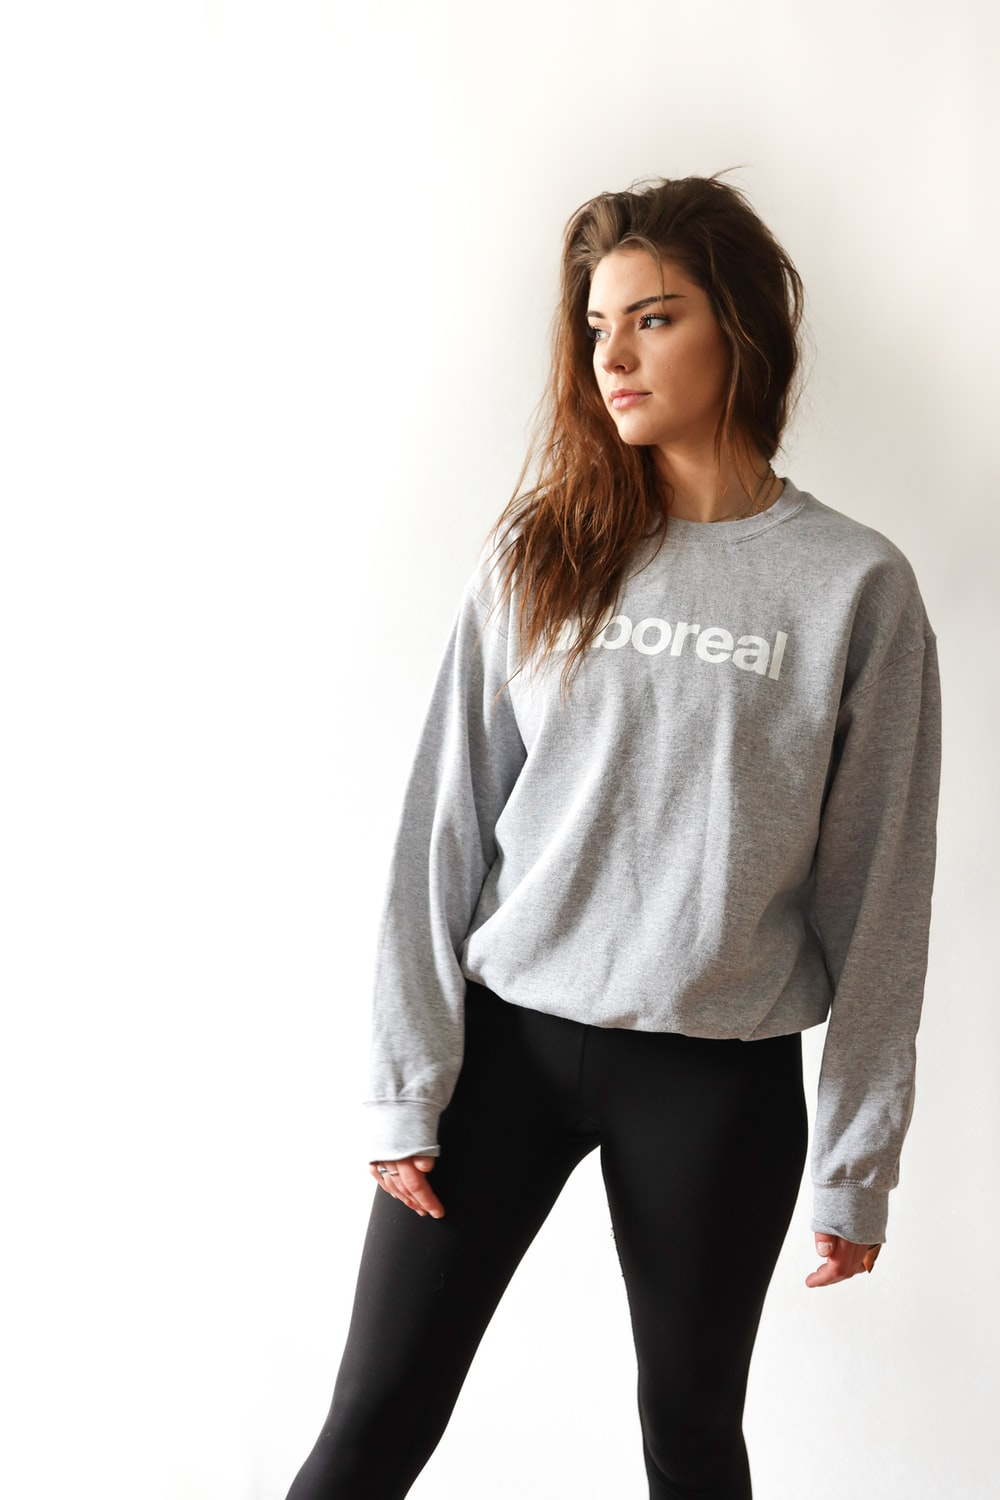 standing woman in gray sweater and black pants